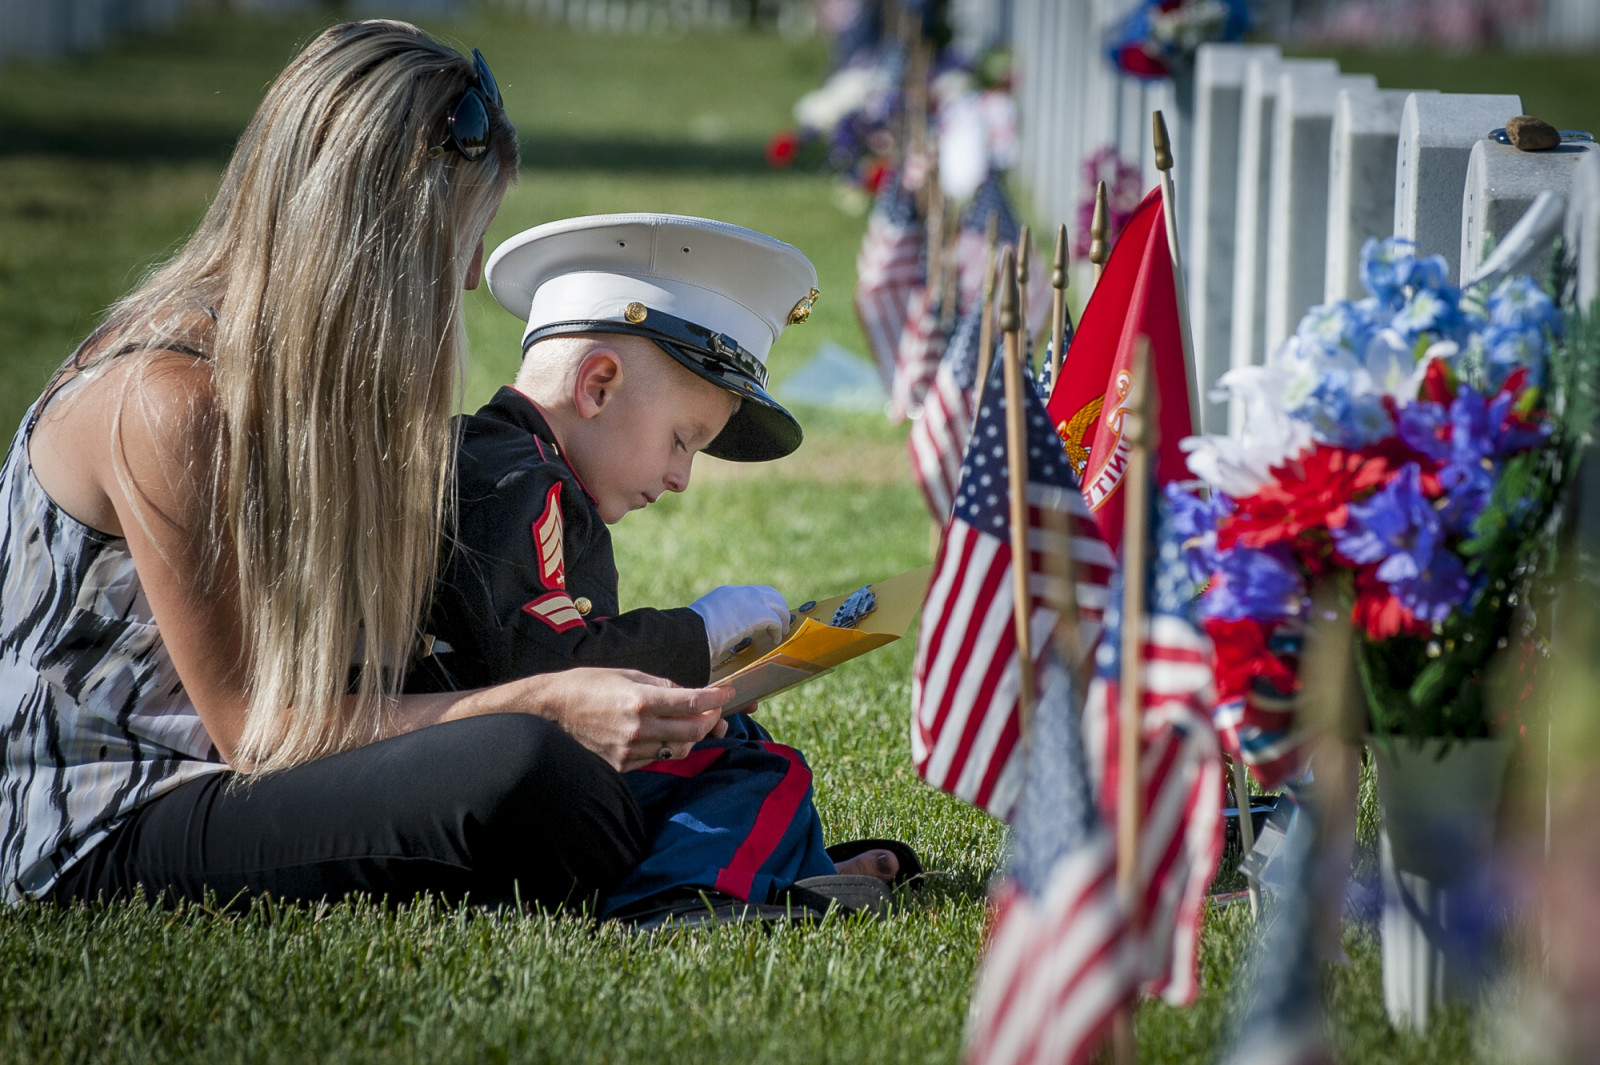 On Memorial Day, Brittany Jacobs of Hertford, North Carolina and her son, Christian, 4 sit at the headstone of her husband, Marine Sgt. Christopher Jacobs, in Section 60 at Arlington National Cemetery in Arlington, Virginia, USA, on 25 May 2015. (Pete Marovich/ European PressPhoto Agency)